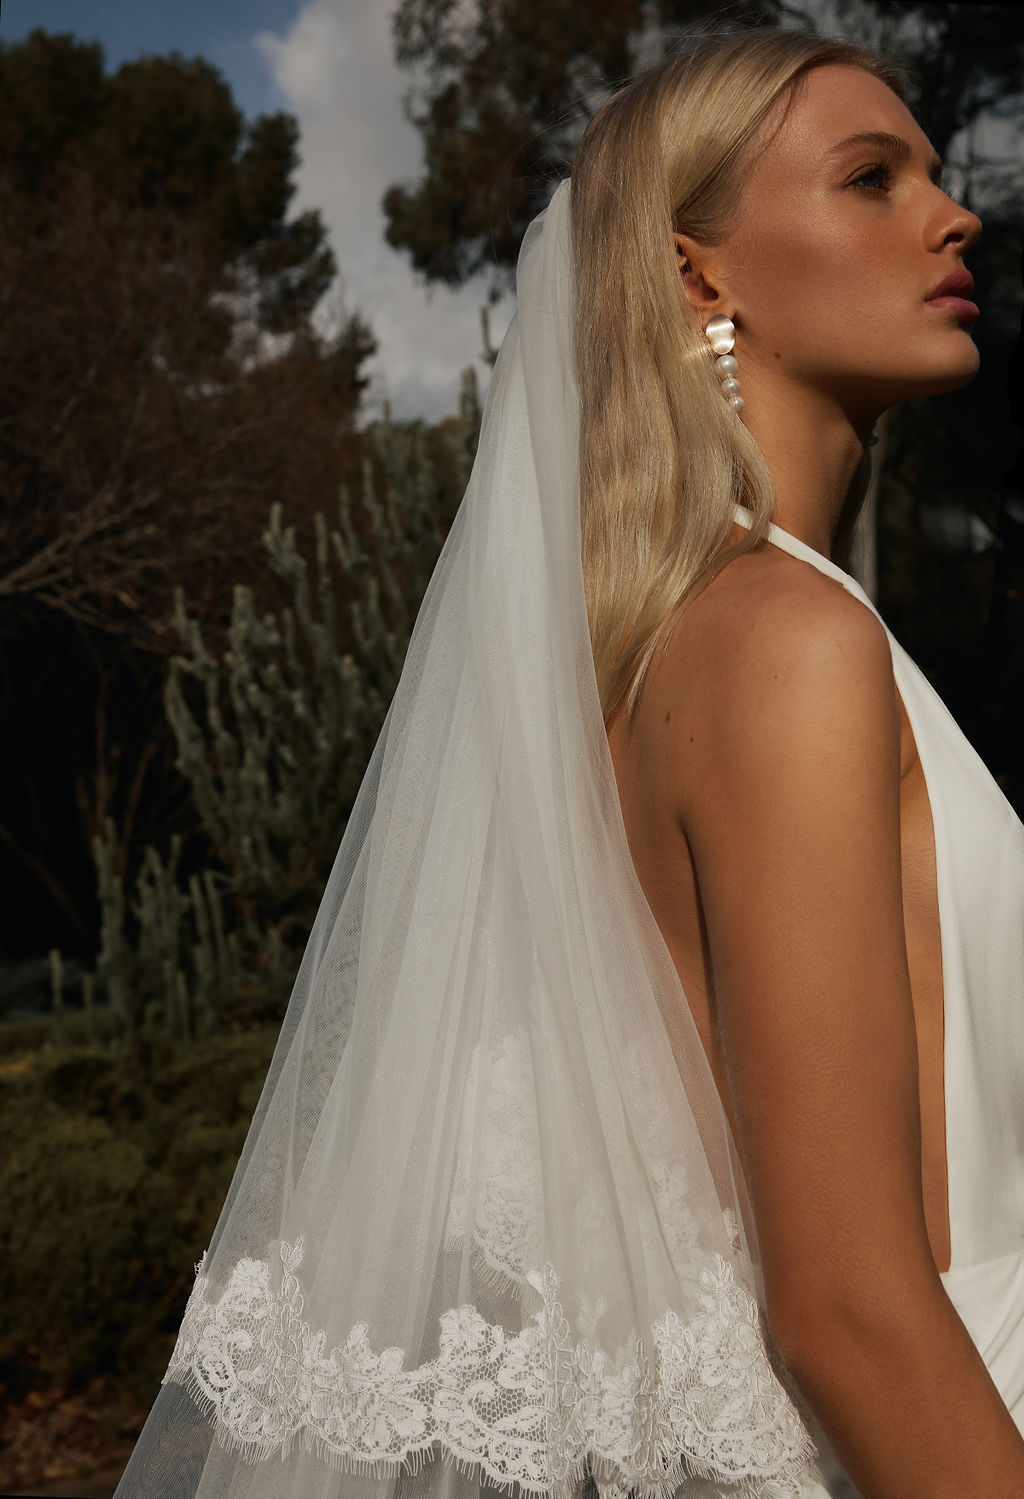 Gigi-Gold-Pearl-Drop-statement-earrings-with-Lace-Blusher-Veil-by-Amelie-George-Bridal-Modern-Wedding-for-2021-campaign